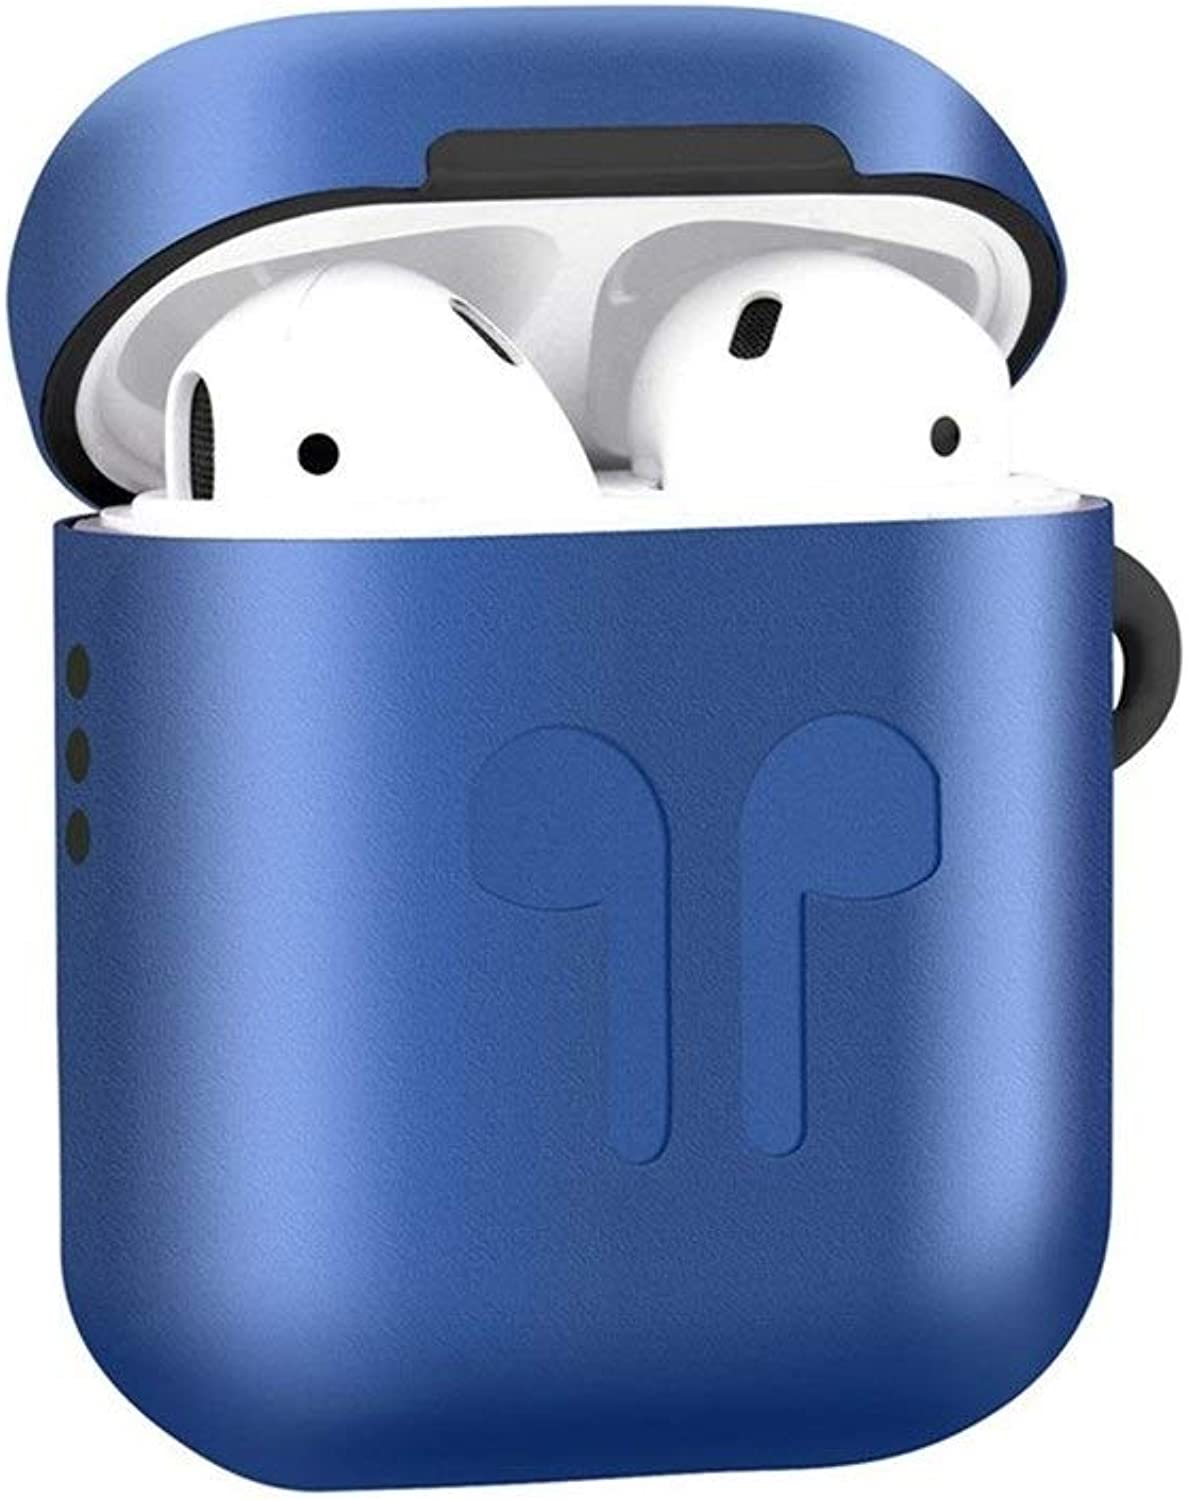 Headset Airpods Cover, Metallic Silicone 2in1 DropProof Headphones Charger Case